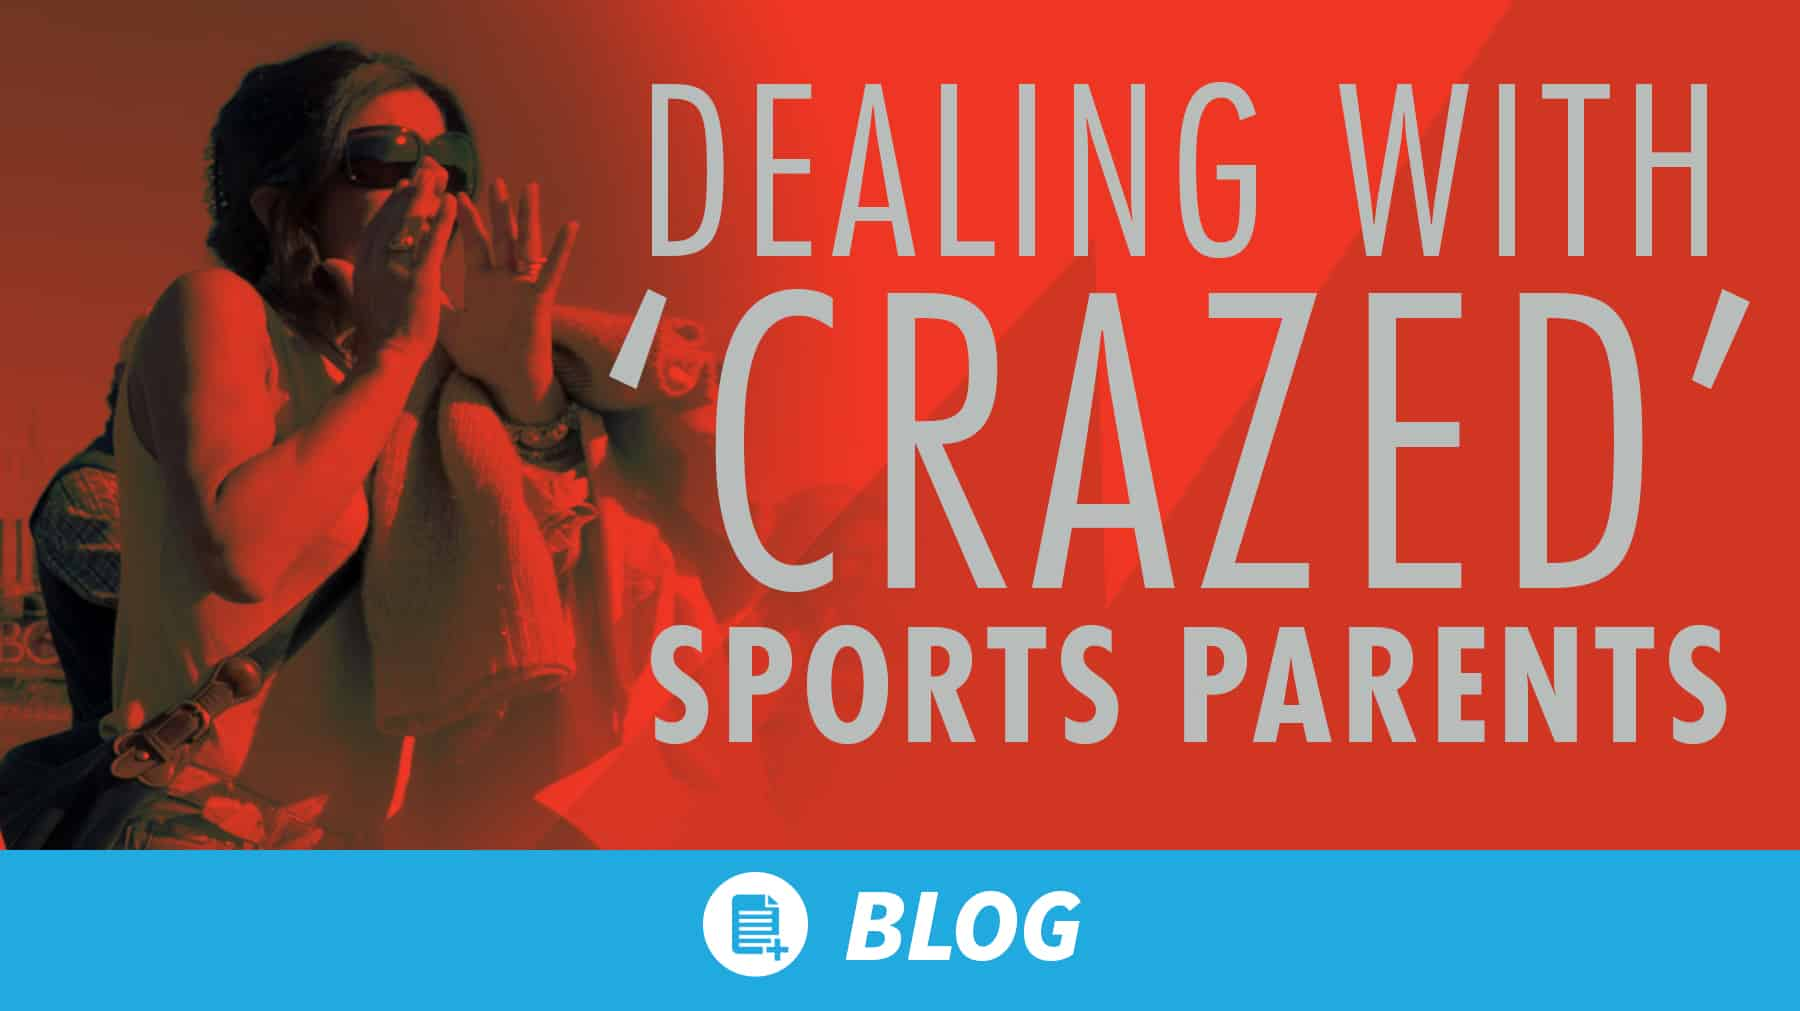 Dealing with 'crazed' sports parents